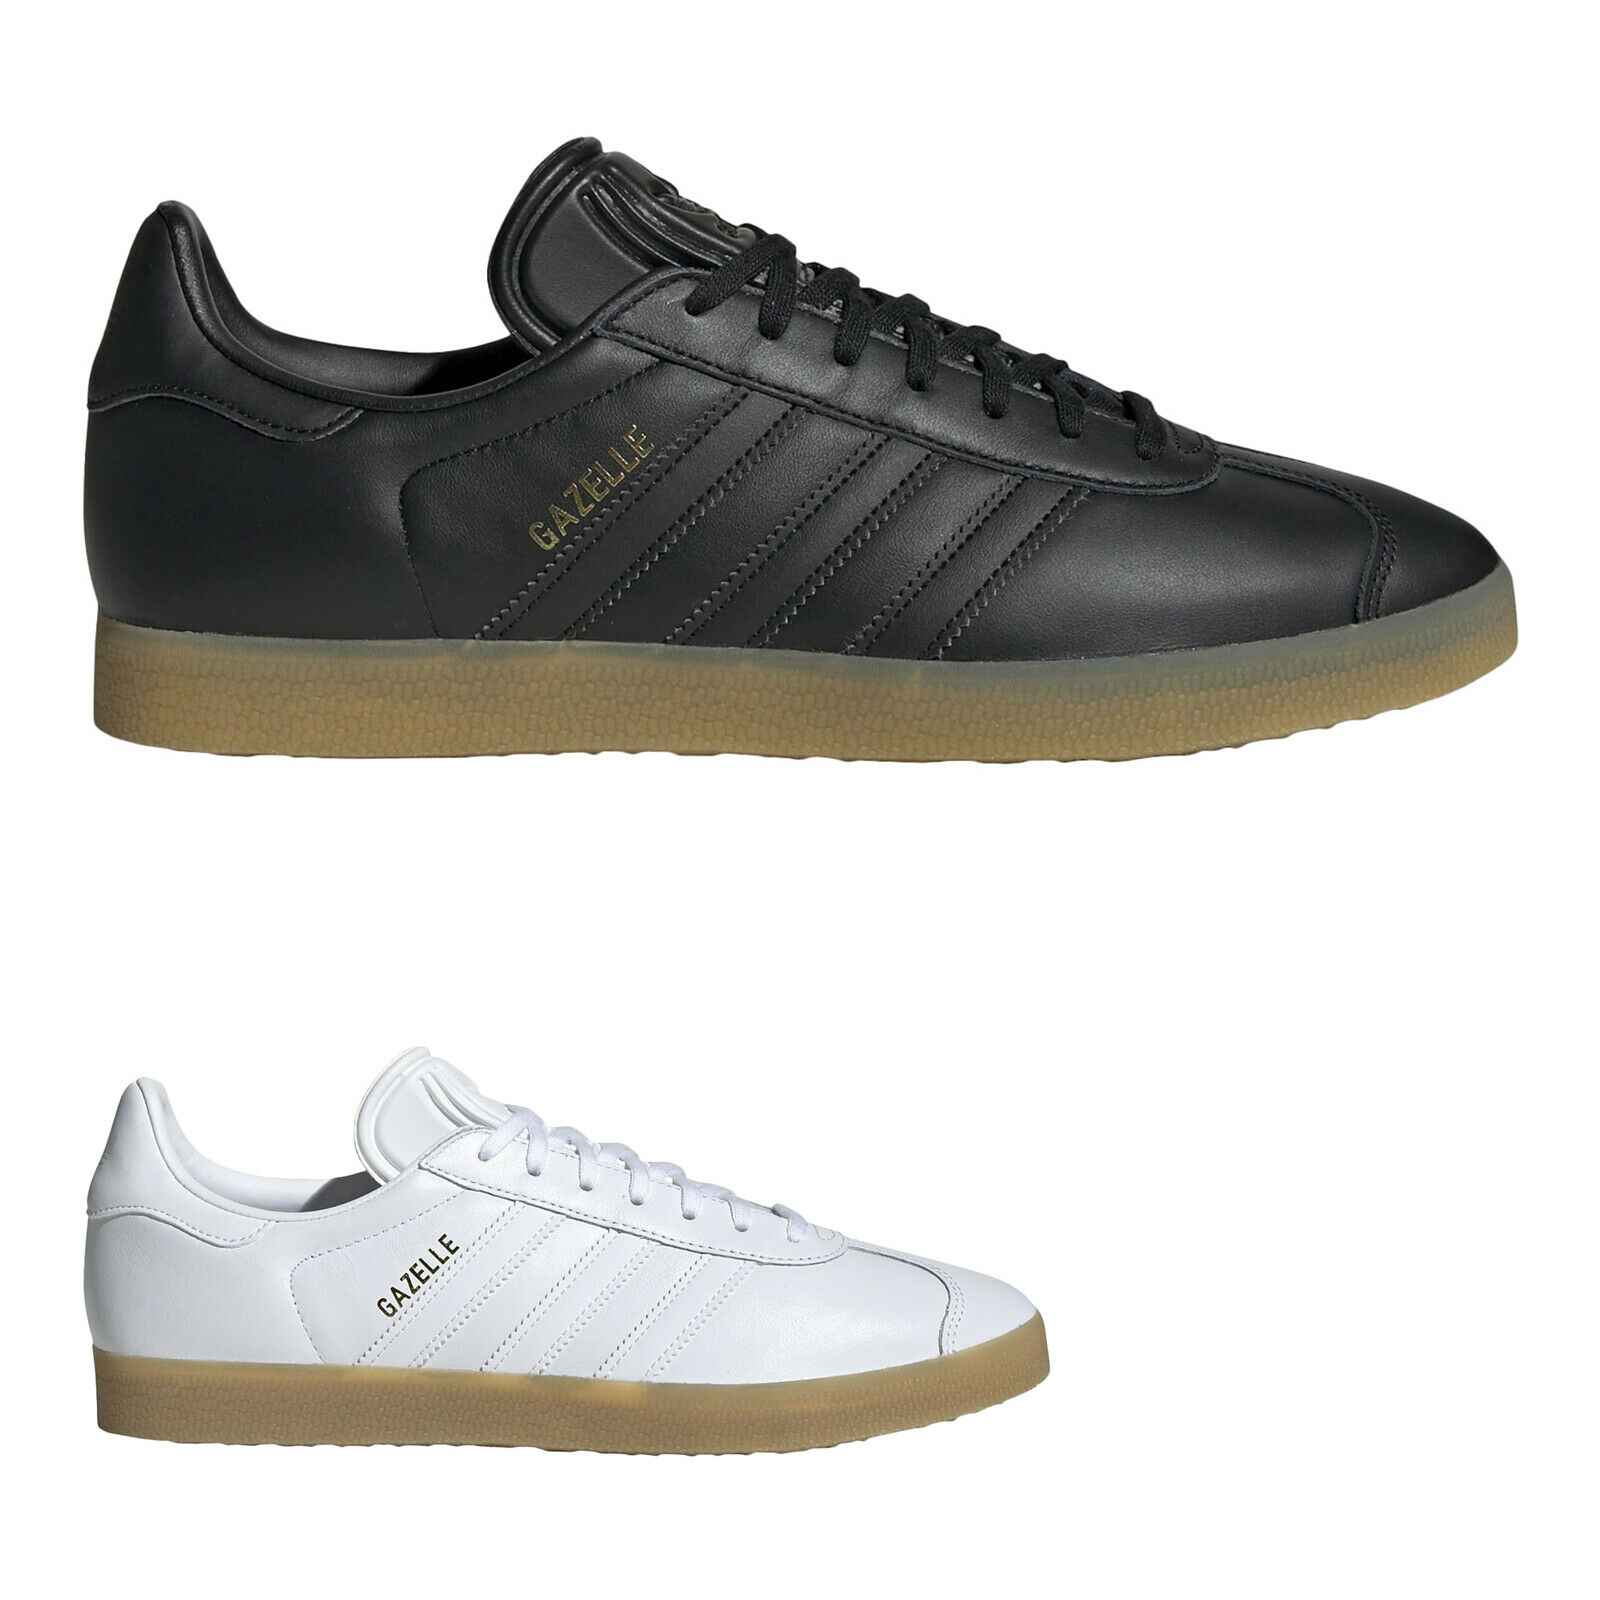 Adidas Gazelle Leather Classic Flat Casual Lace-Up Mens Trainers